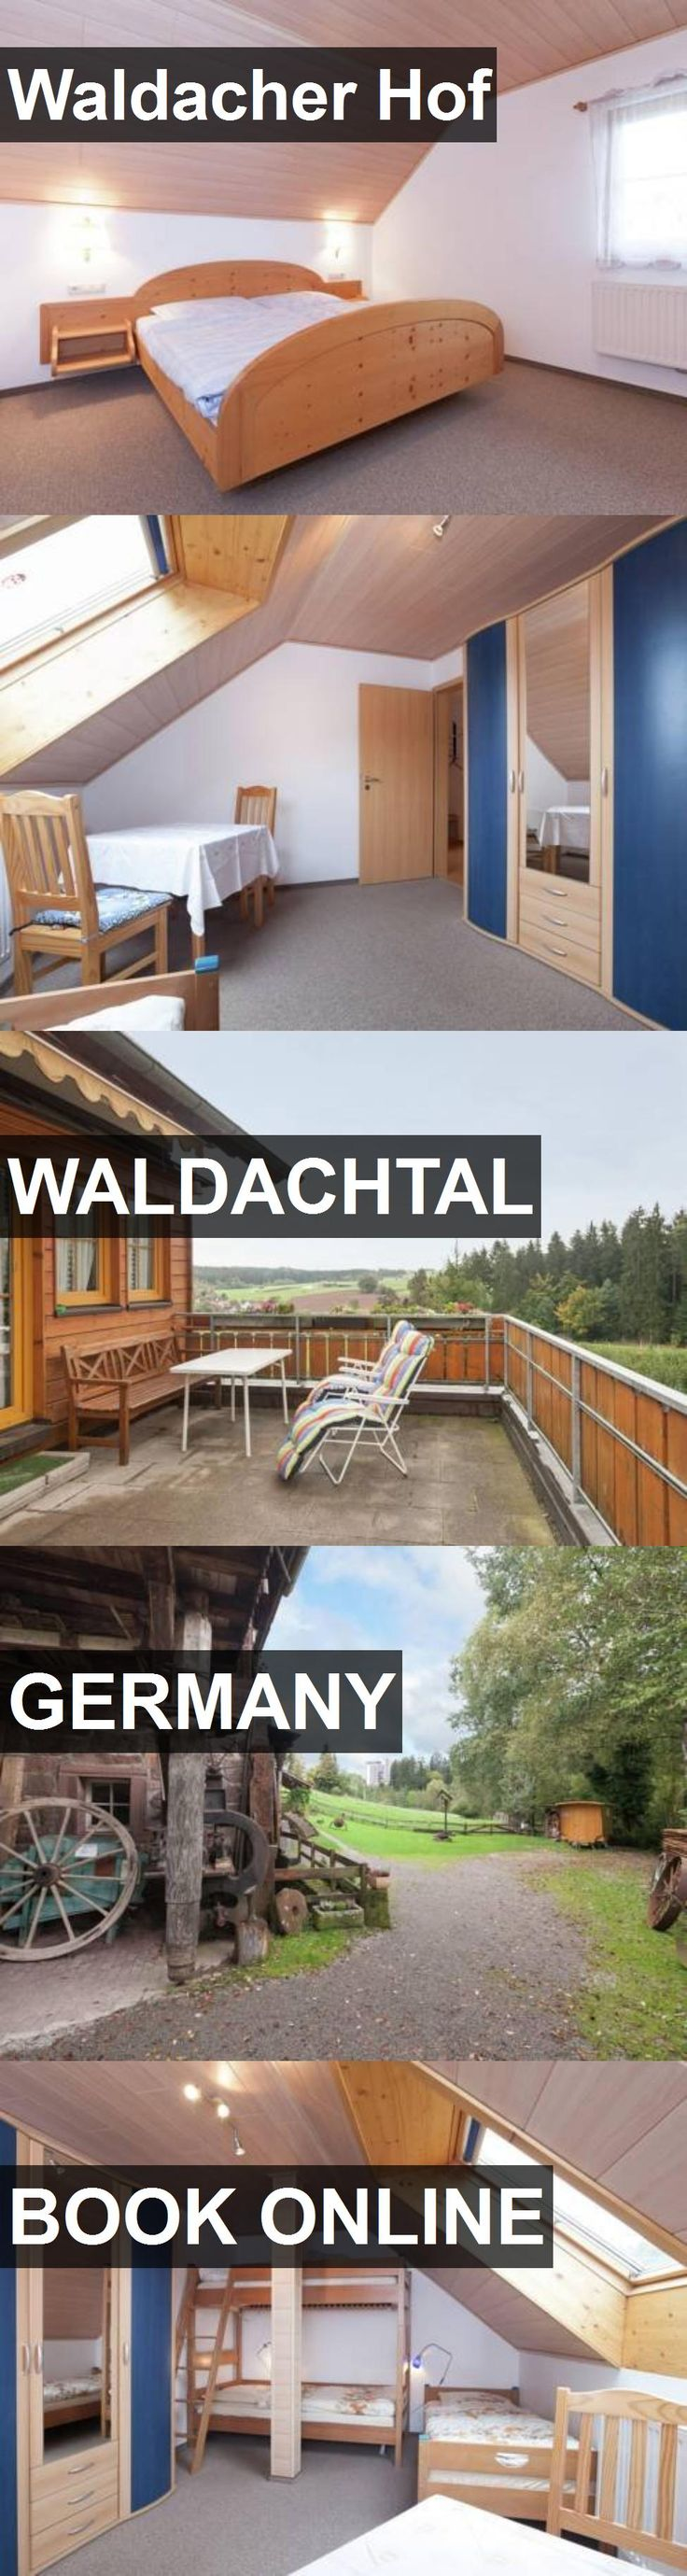 Hotel Waldacher Hof in Waldachtal, Germany. For more information, photos, reviews and best prices please follow the link. #Germany #Waldachtal #hotel #travel #vacation